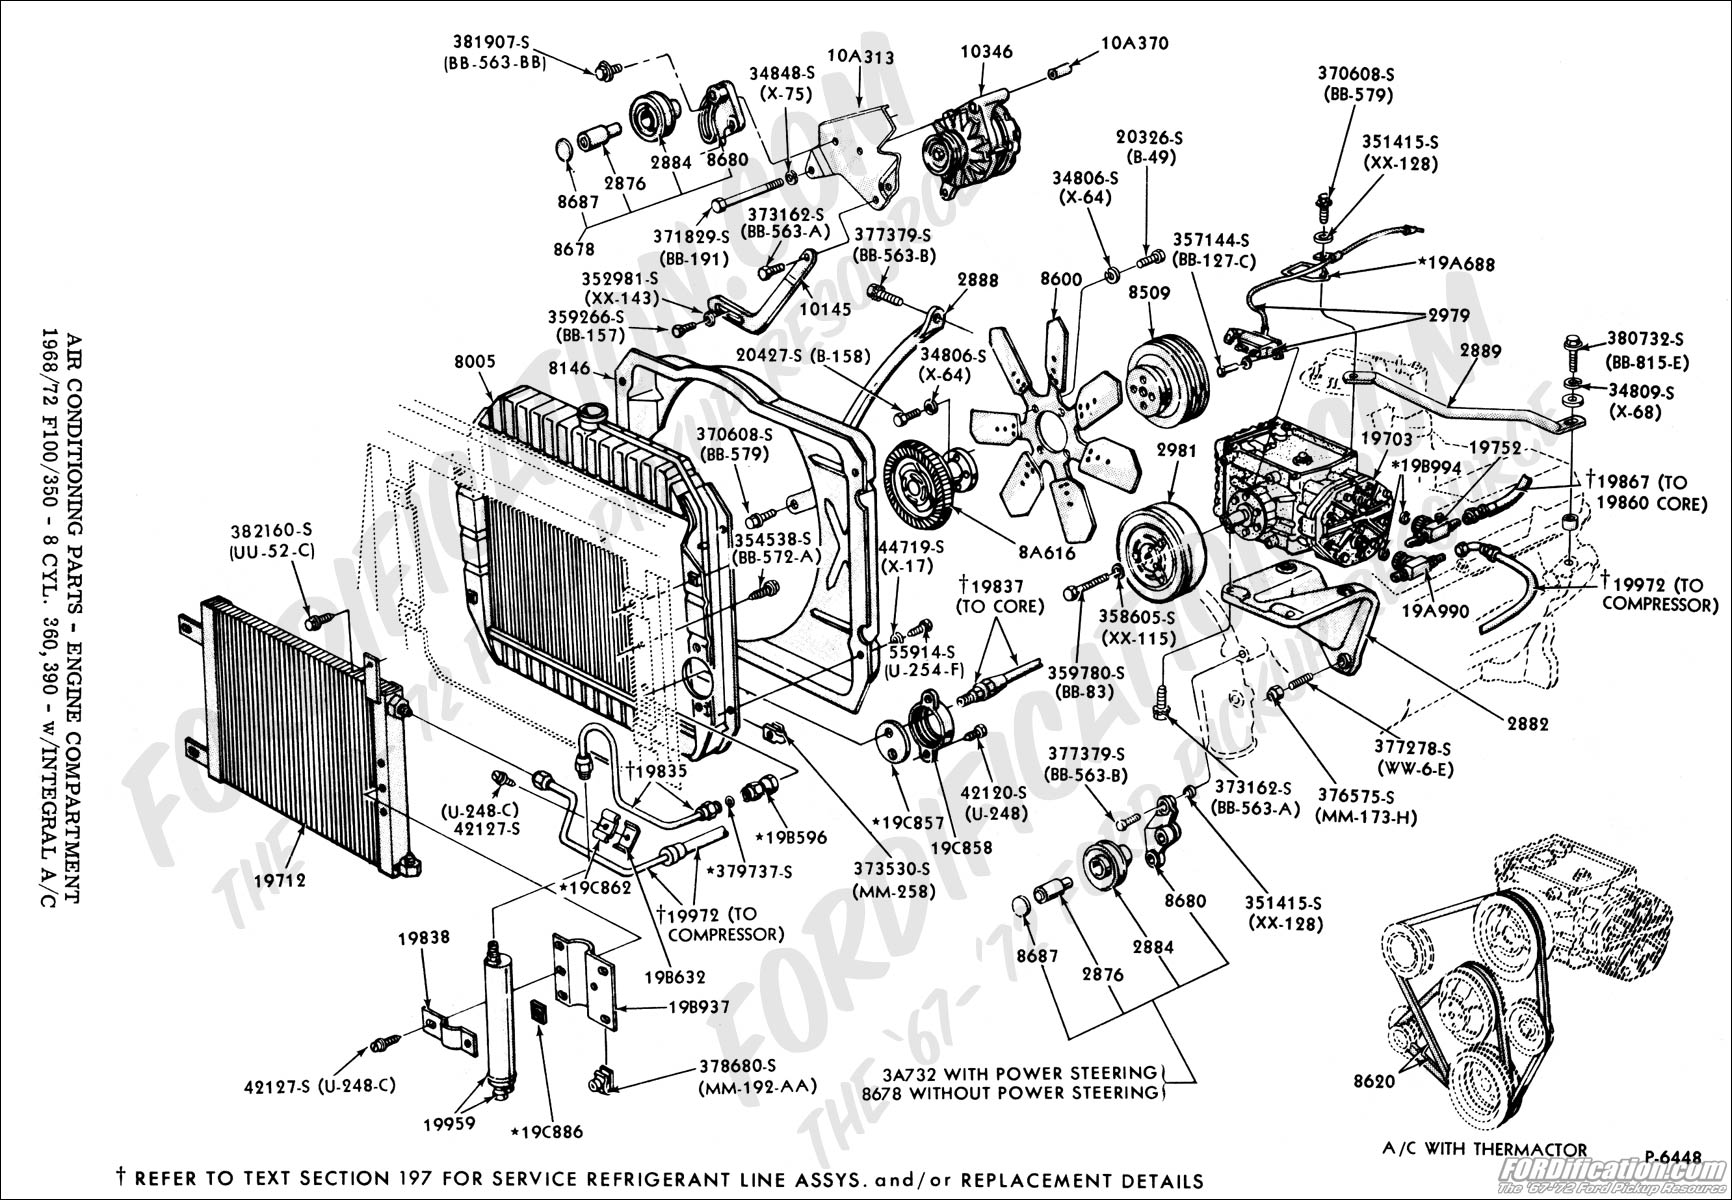 1966 ford f 150 wiring diagrams with Ac Eng P Integral on 879177 Alternator Voltage Regulator Wiring also 1279644 1977 F 250 4x4 Dimensions moreover P 0900c1528007bdaa moreover Parts Front Suspension  ponents Diagram Car as well Schematics h.